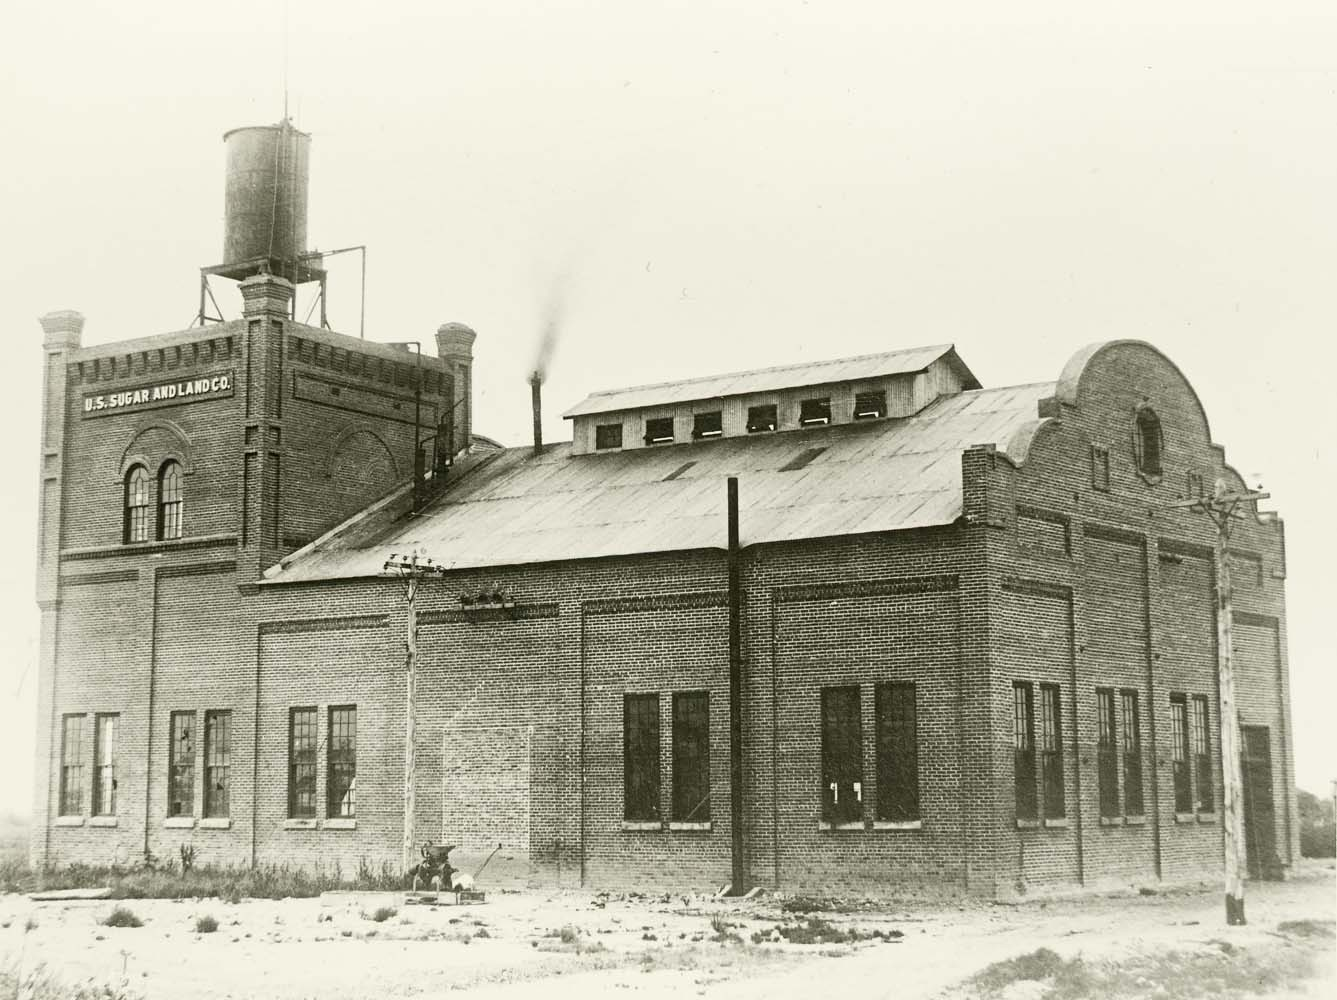 United States Sugar and Land Company, Garden City, Kansas